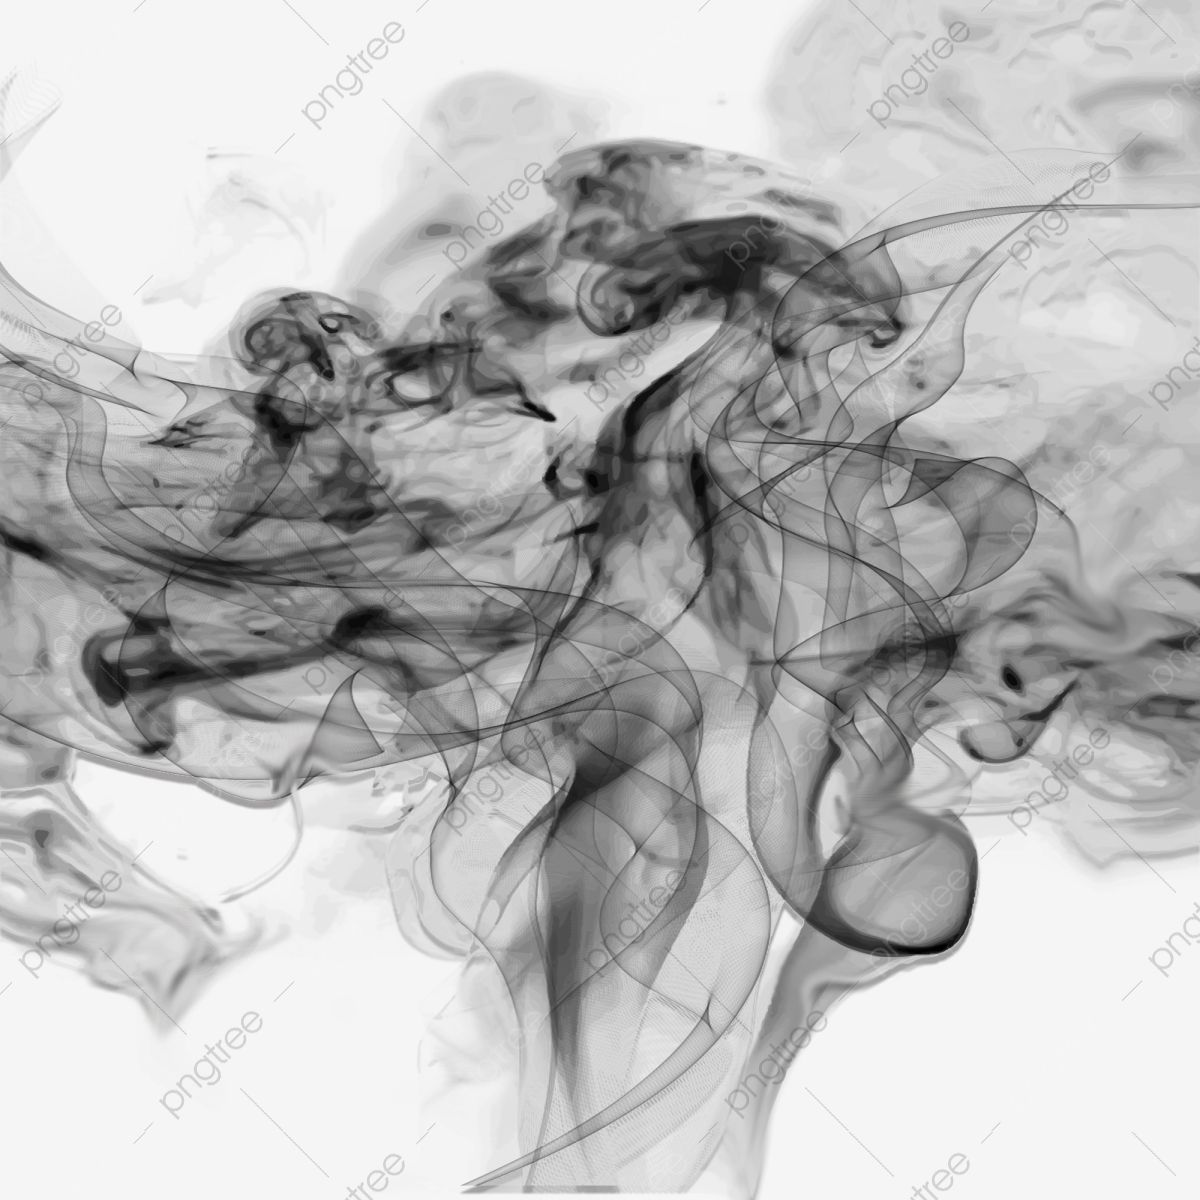 Ink Smoke Smudge Element Design Ink Smoke Bloom Png Transparent Image And Clipart For Free Download Poster Background Design Colorful Backgrounds Smoke Texture